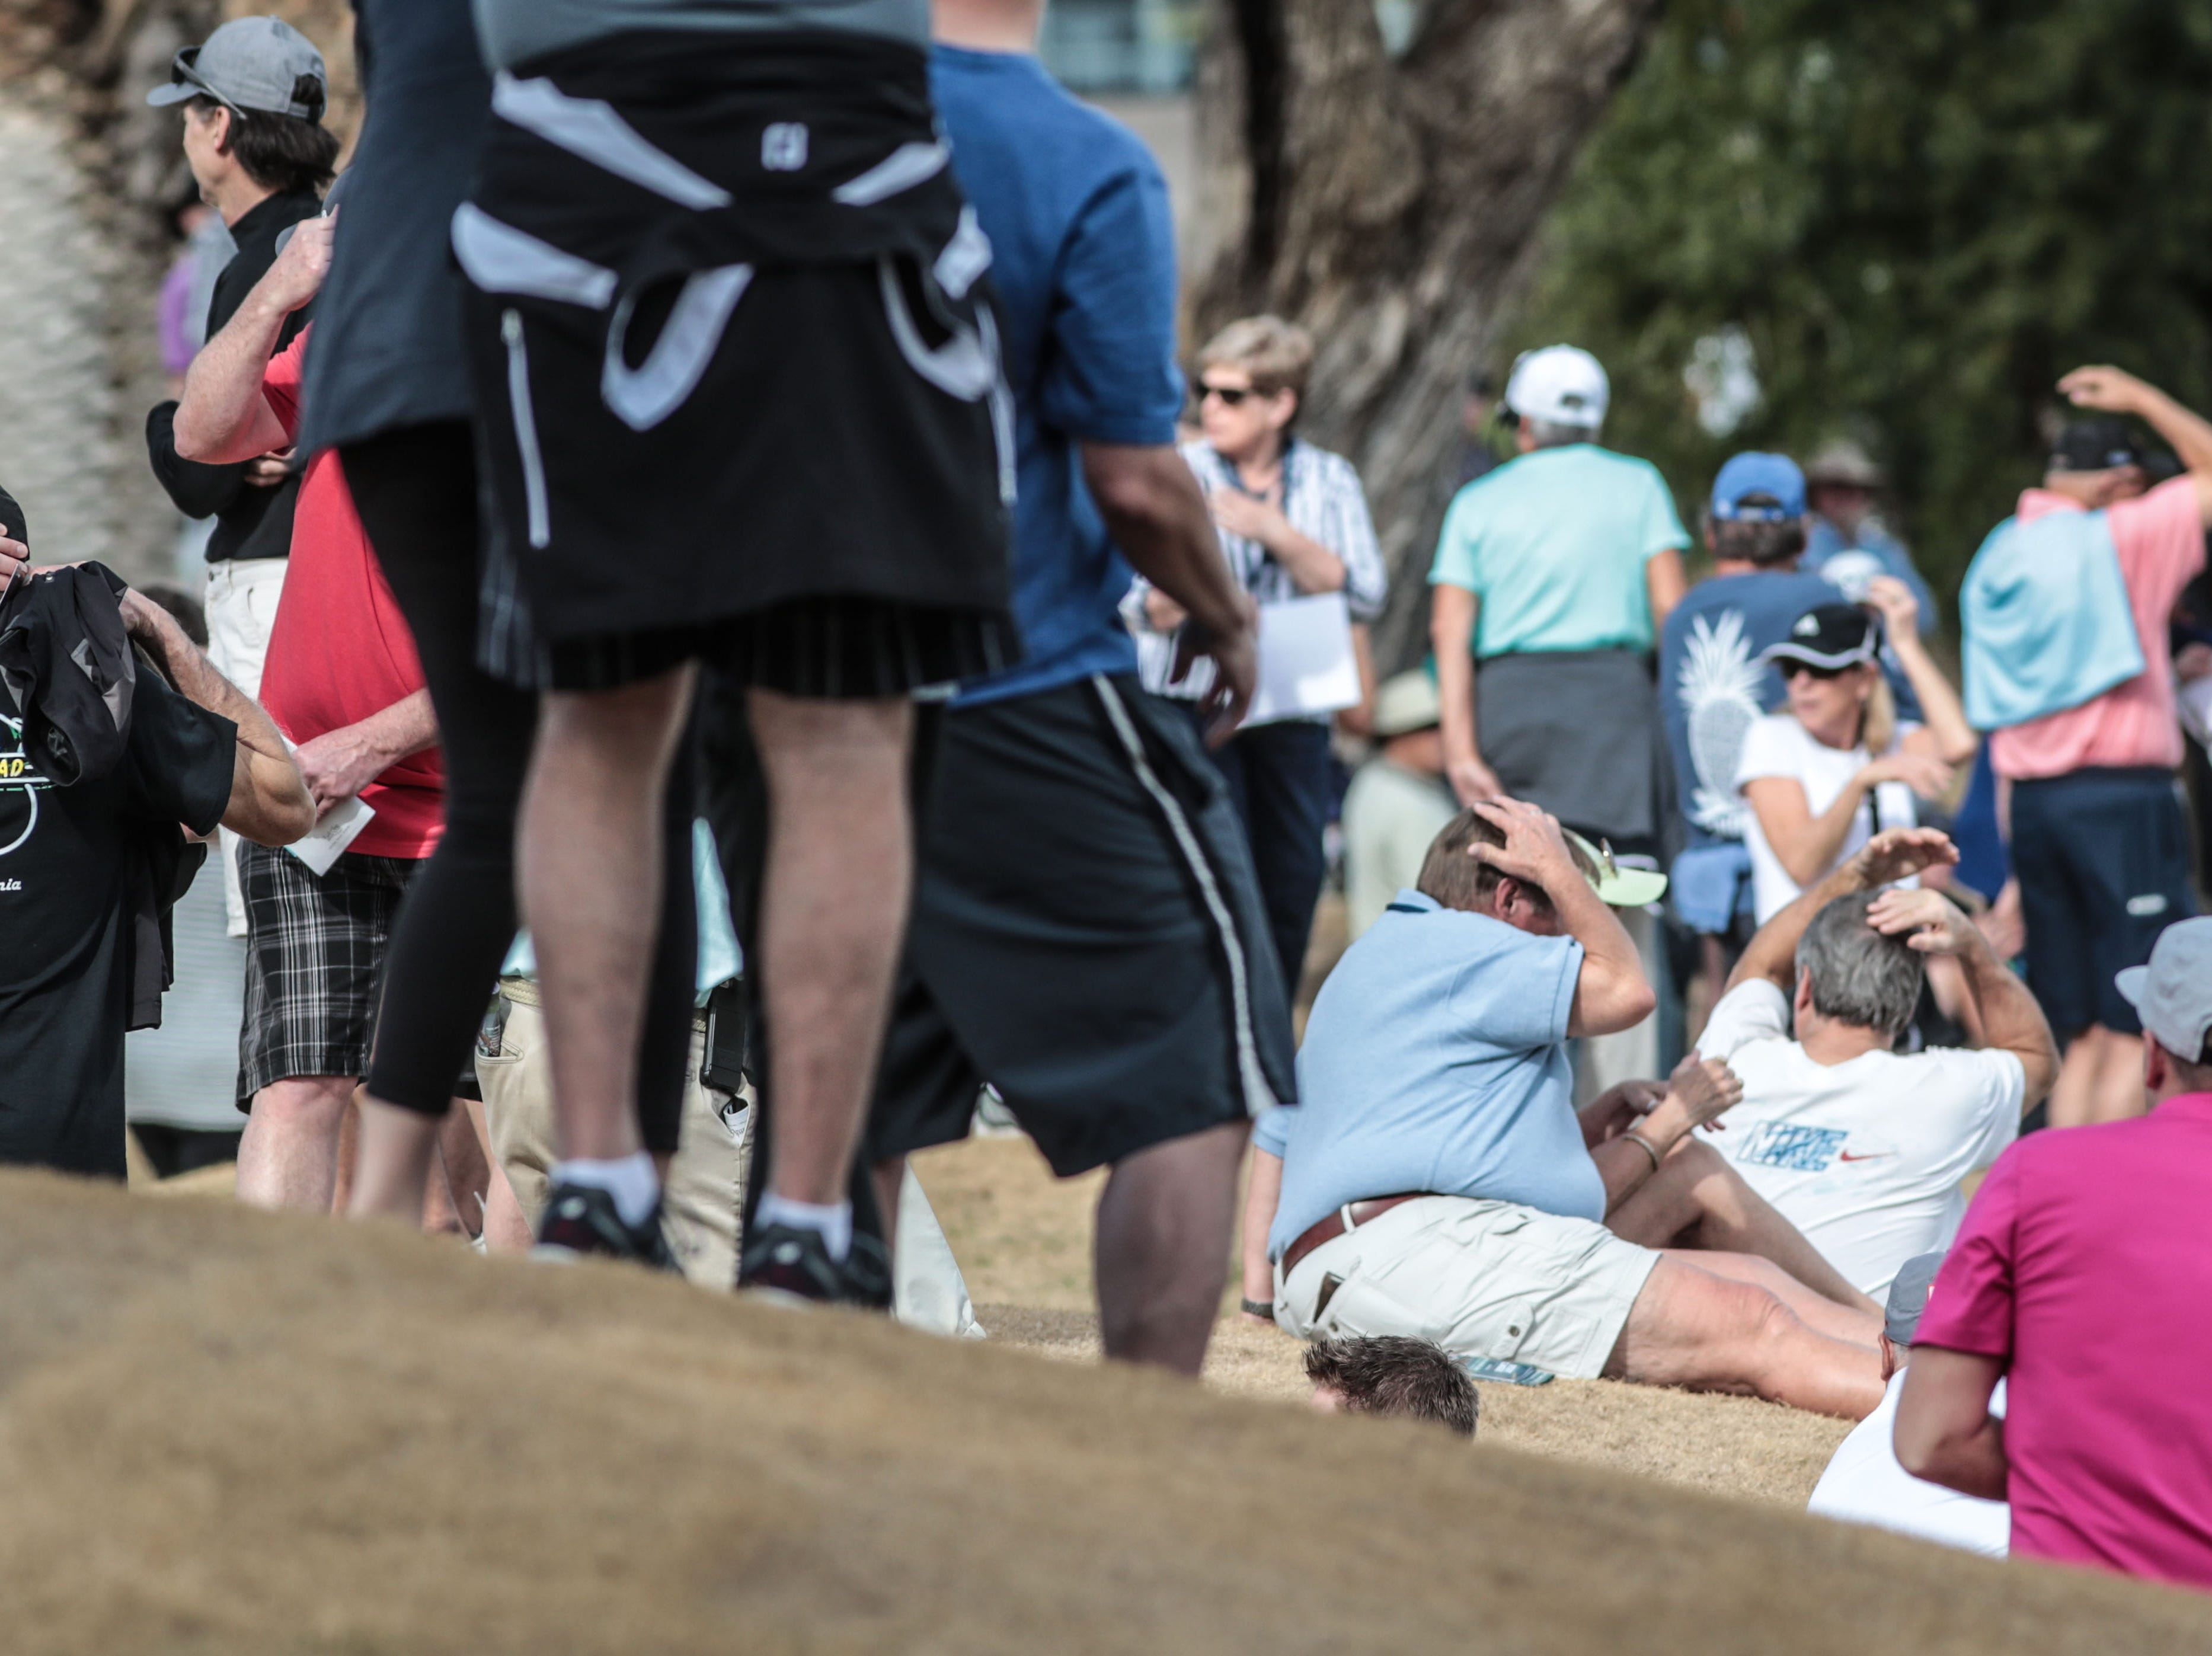 Spectators cover their heads as Phil Mickelson's 18th tee shot lands in the cart path at the Nicklaus Tournament Course at PGA West in La Quinta during the 2nd round of the Desert Classic on Friday, January 18, 2019.